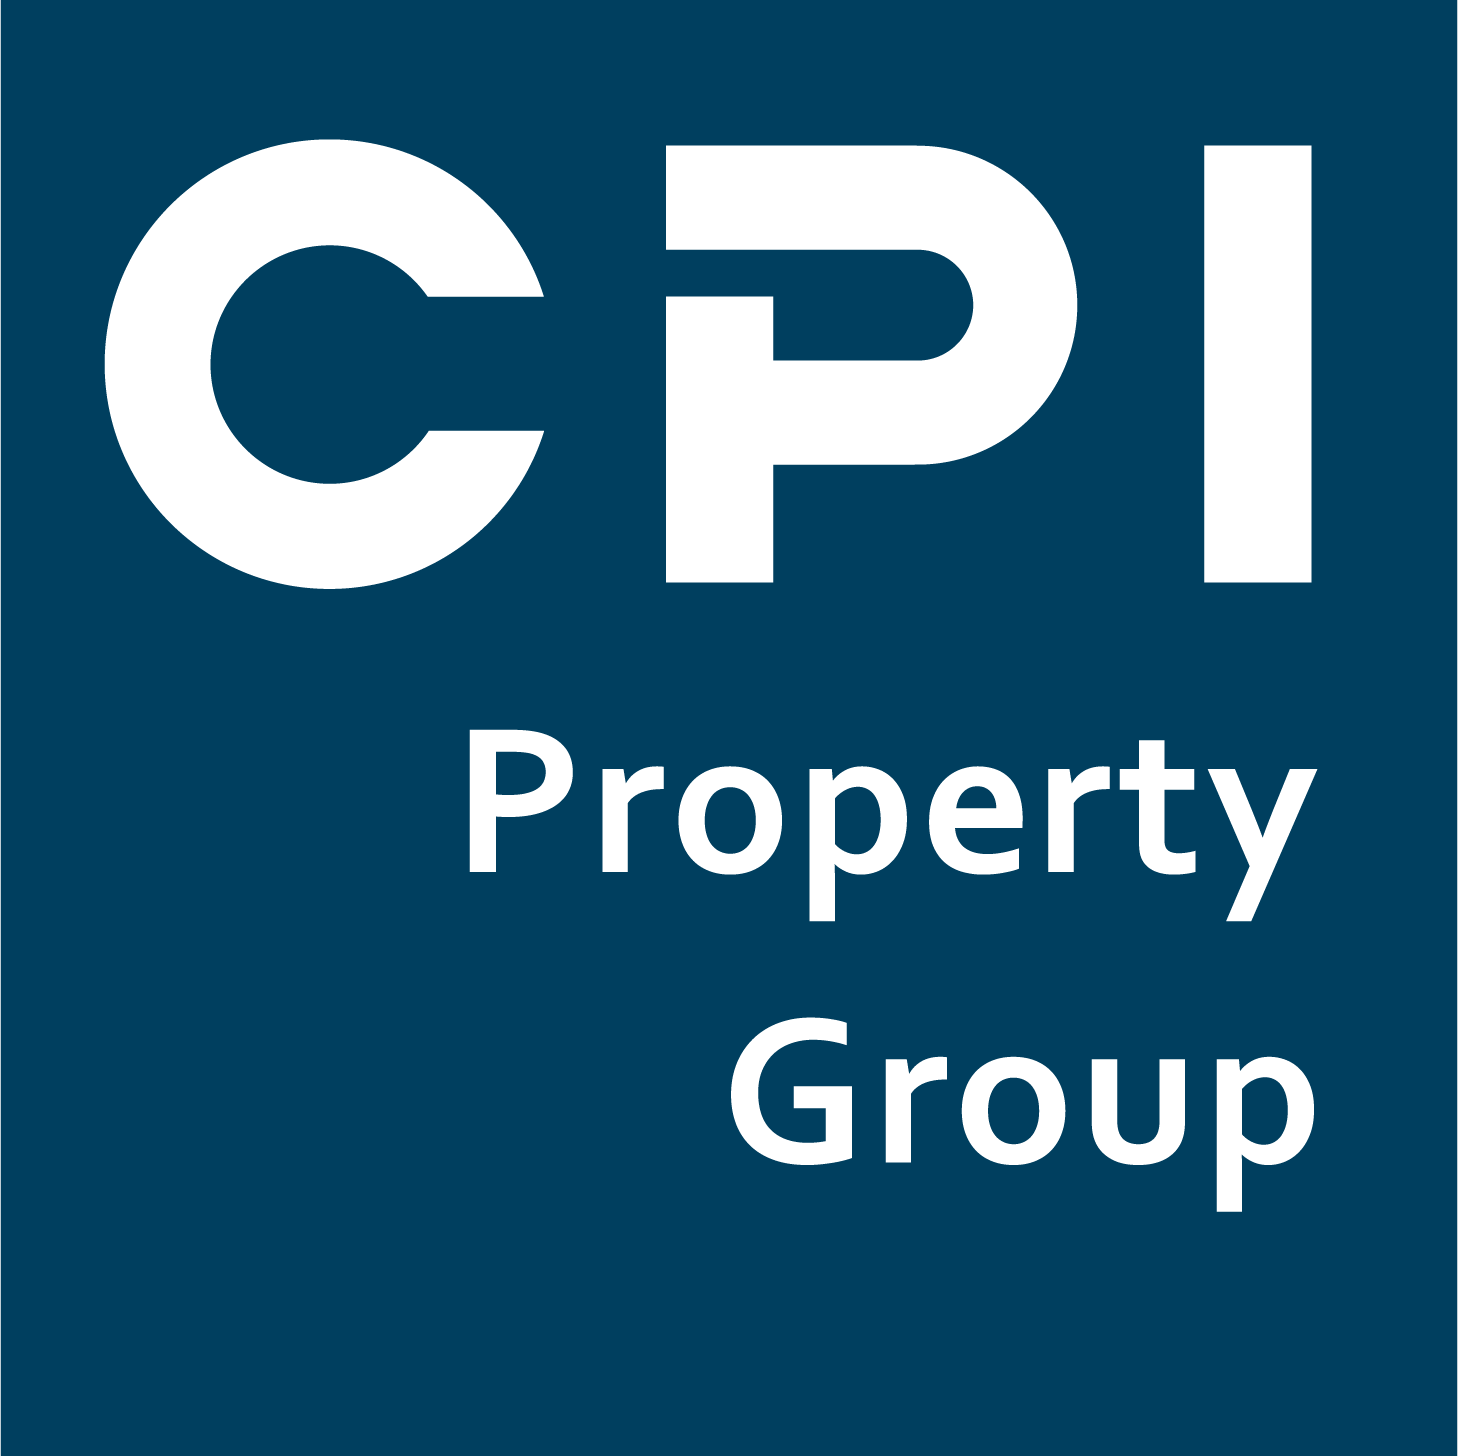 CPI Property Group Logo png